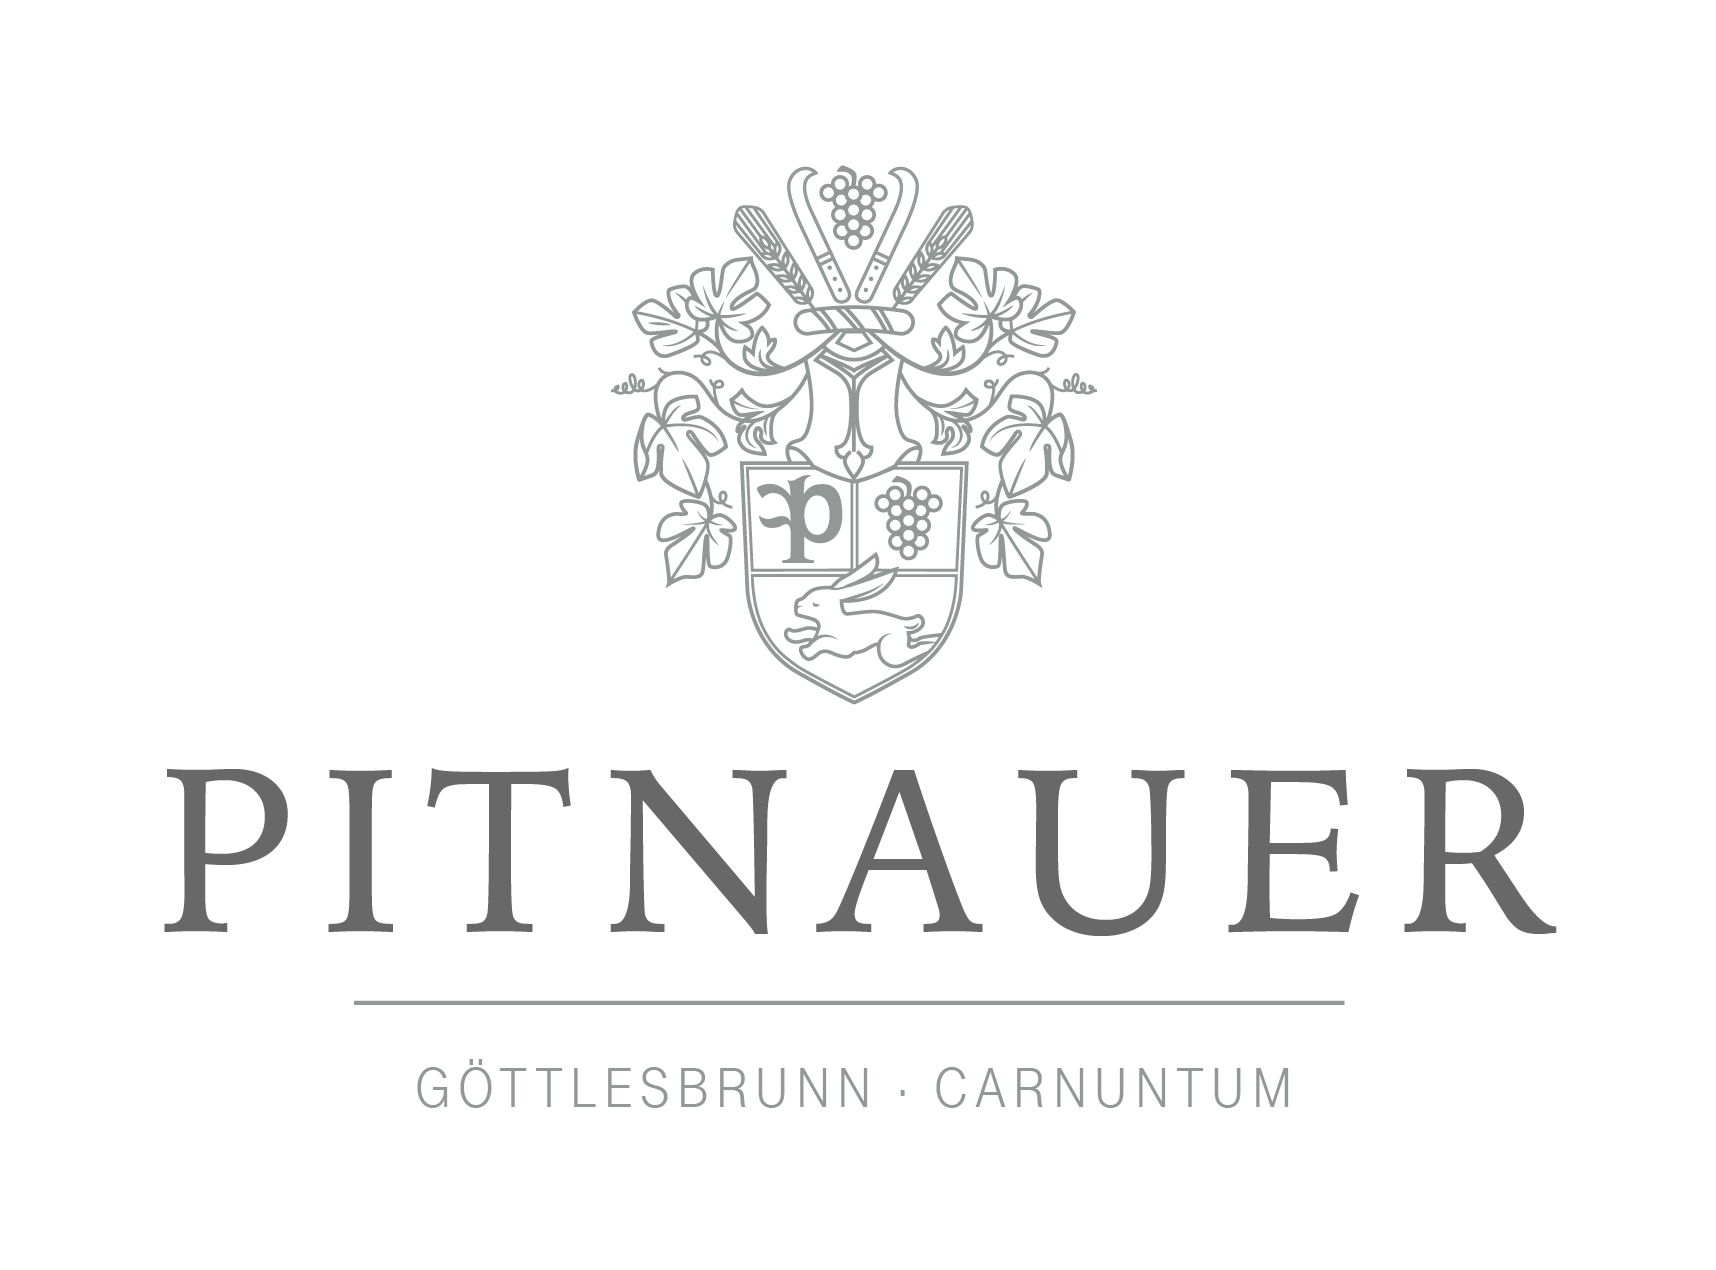 Familie Pitnauer